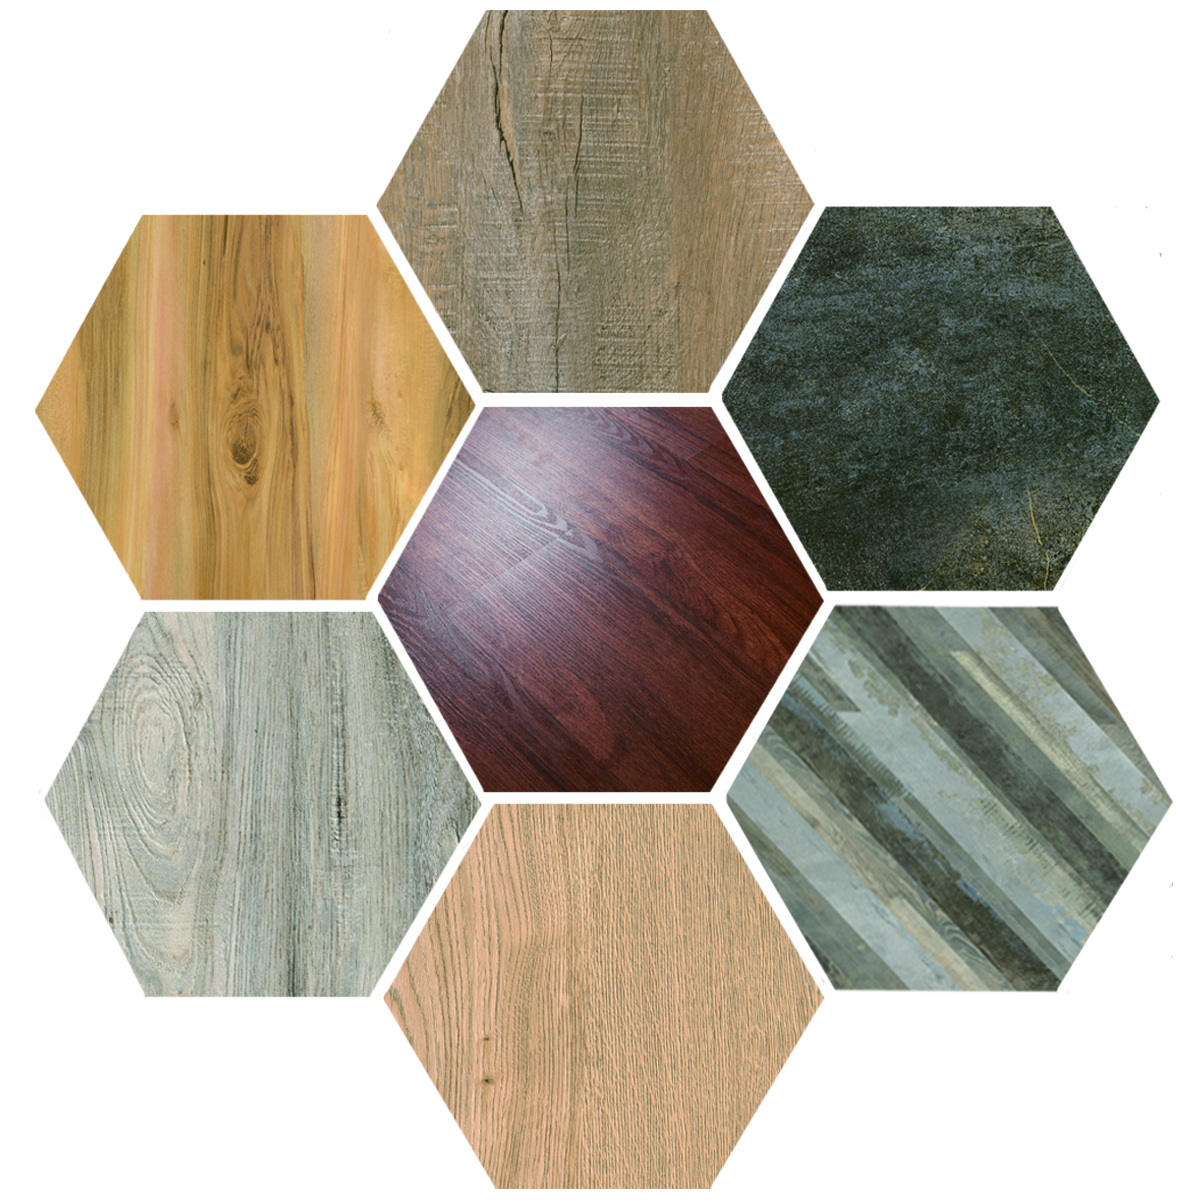 Wood Grain Spc Flooring Wholesale